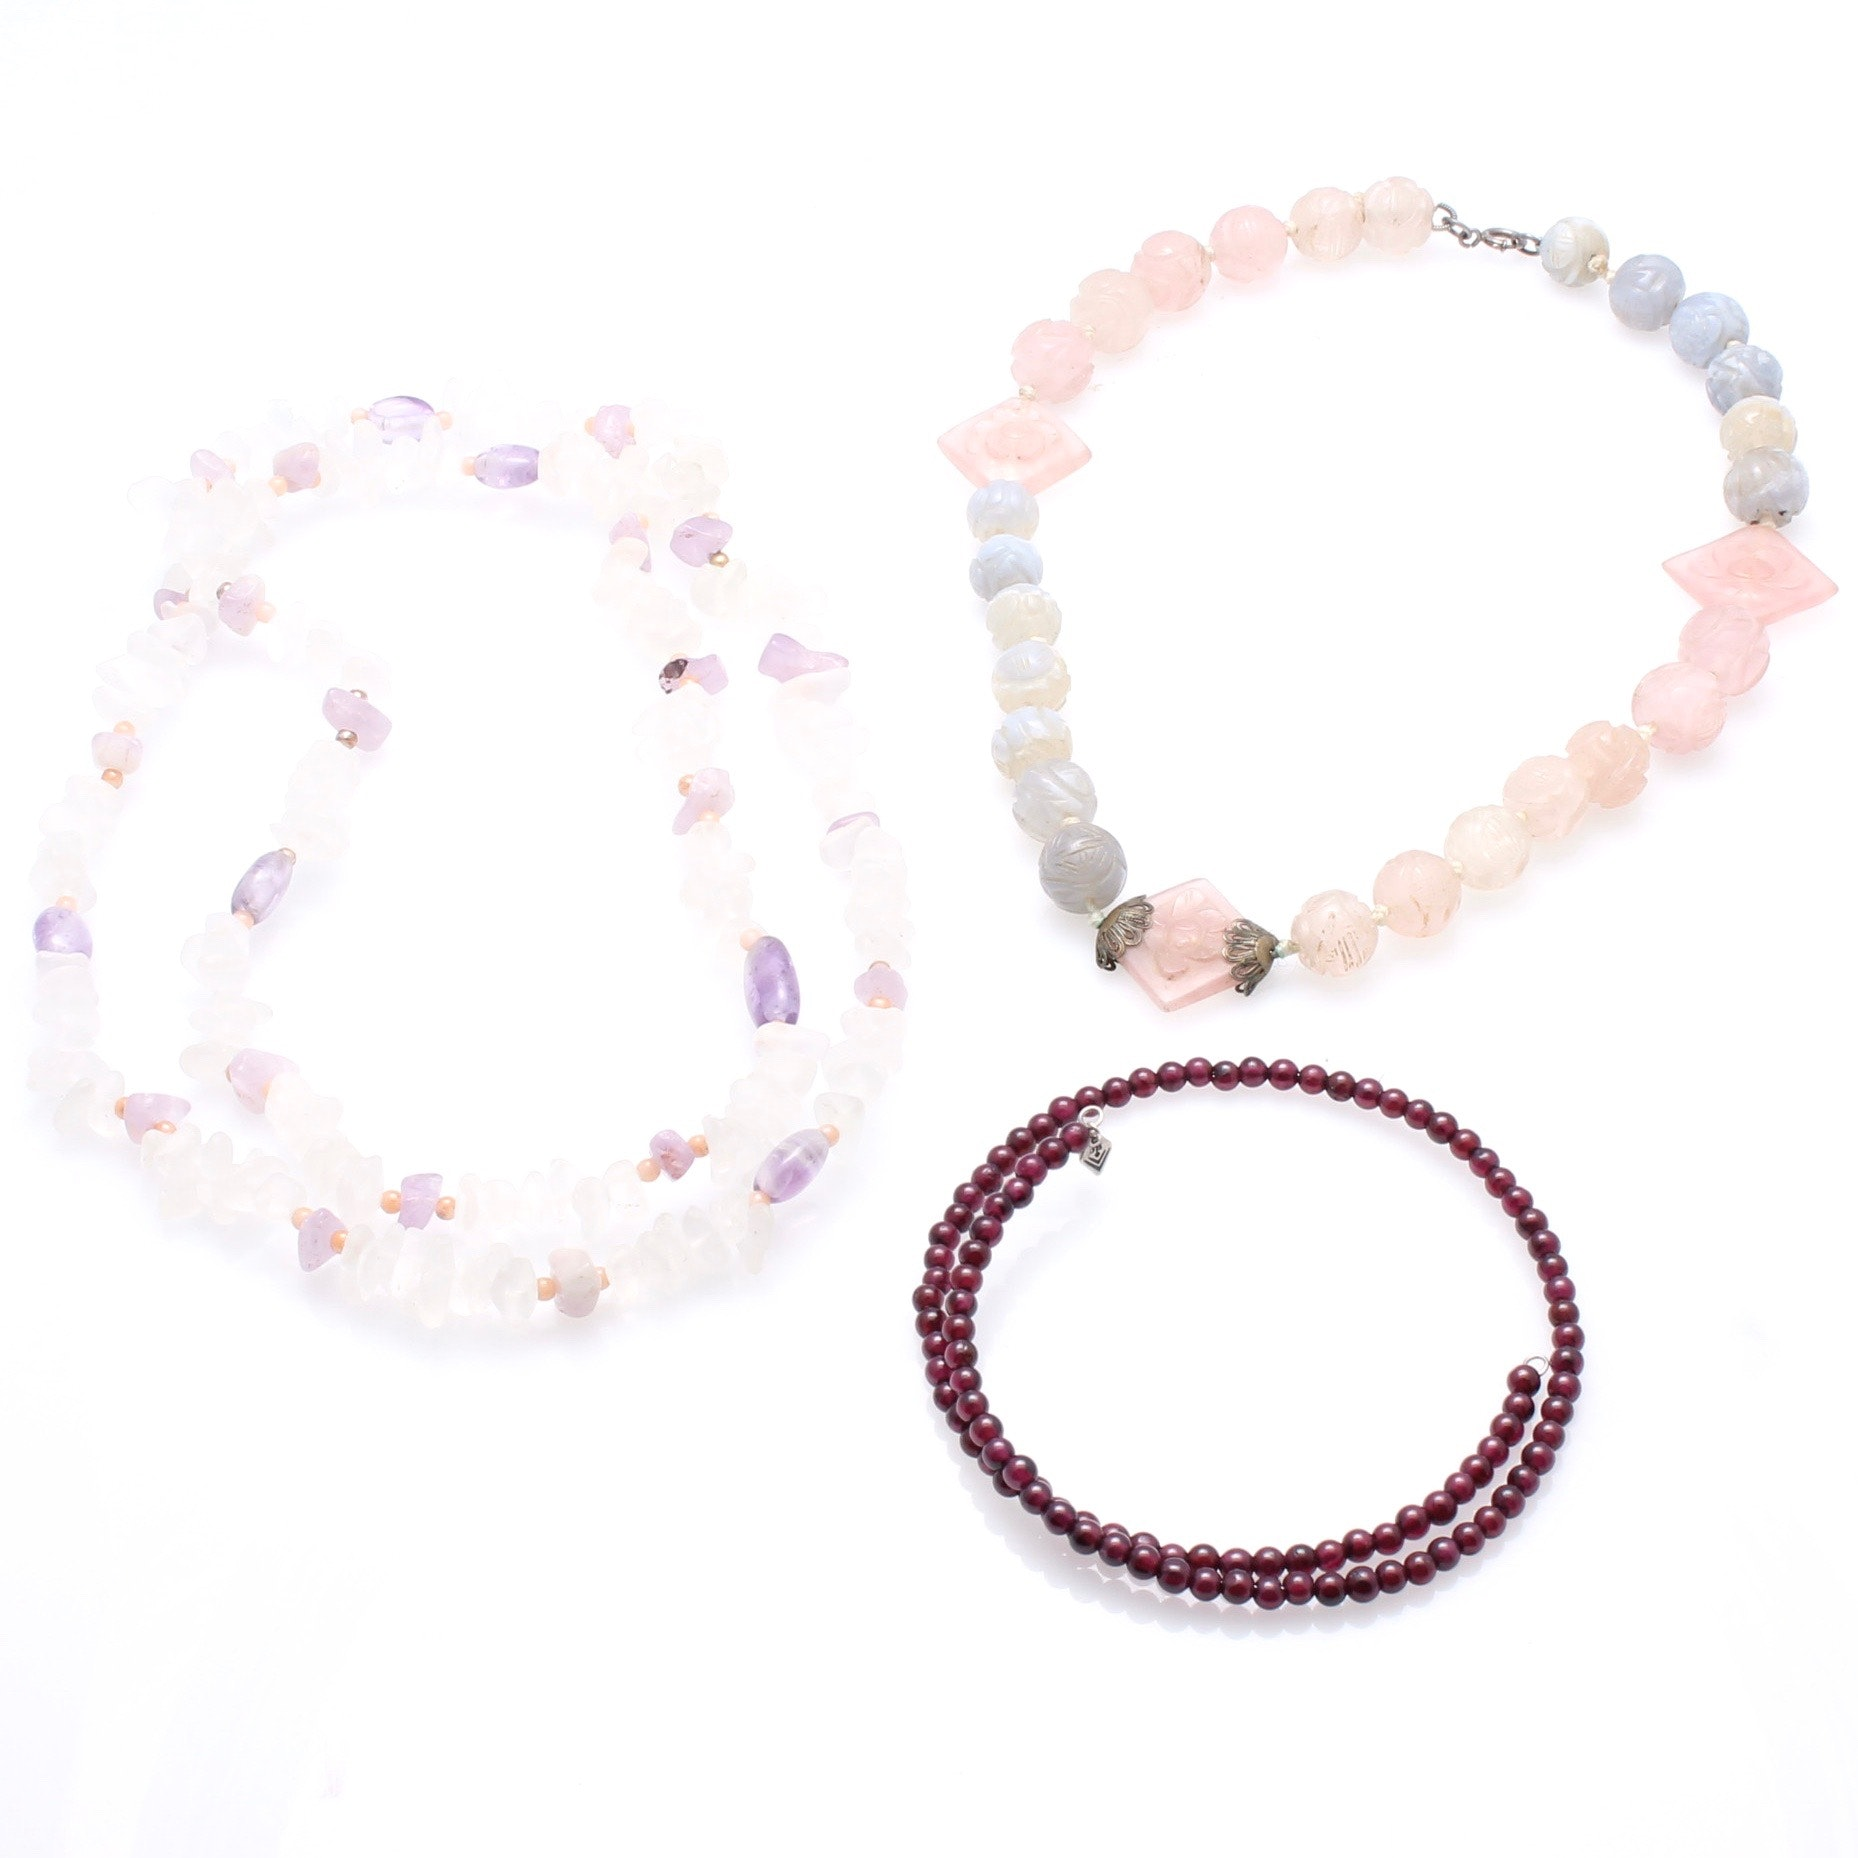 Sterling Silver Accented Gemstone Beaded Necklaces Including Silpada